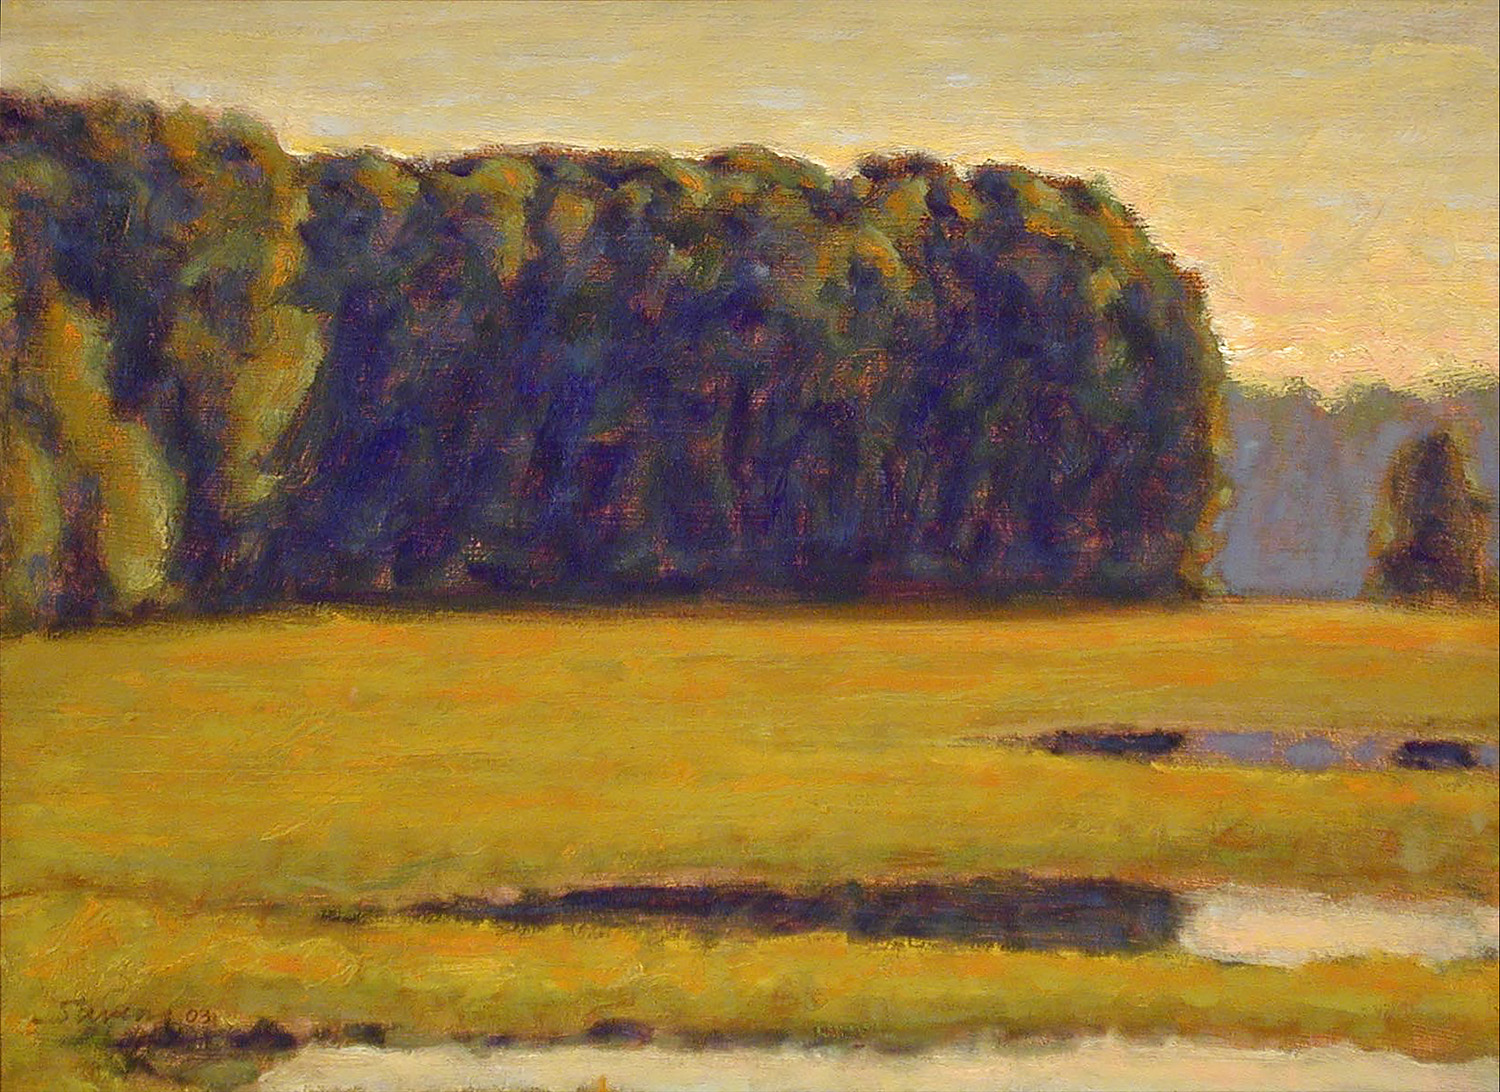 Field of Puddles  | oil on canvas | 12 x 16"